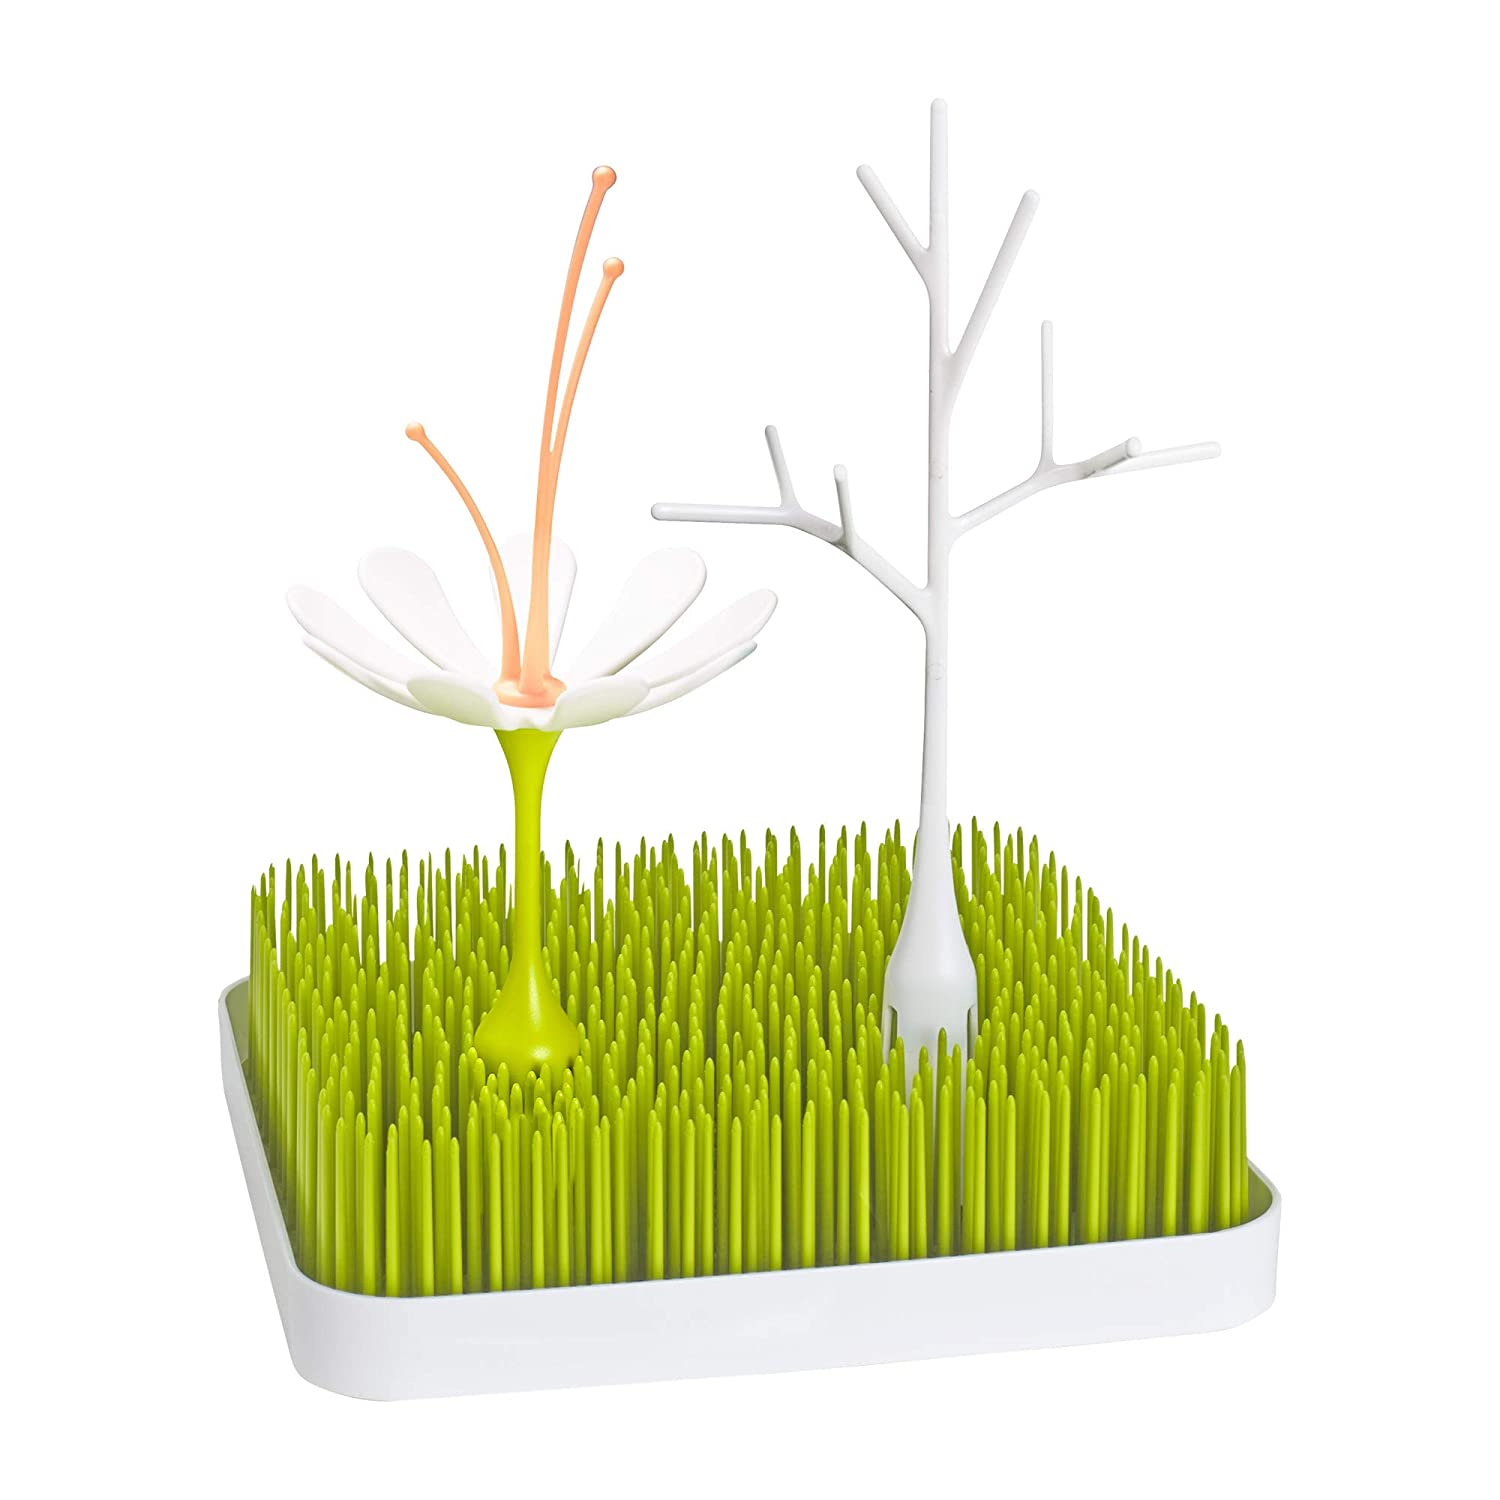 Boon Grass Countertop Baby Bottle Drying Rack with Stem & Twig Accessories